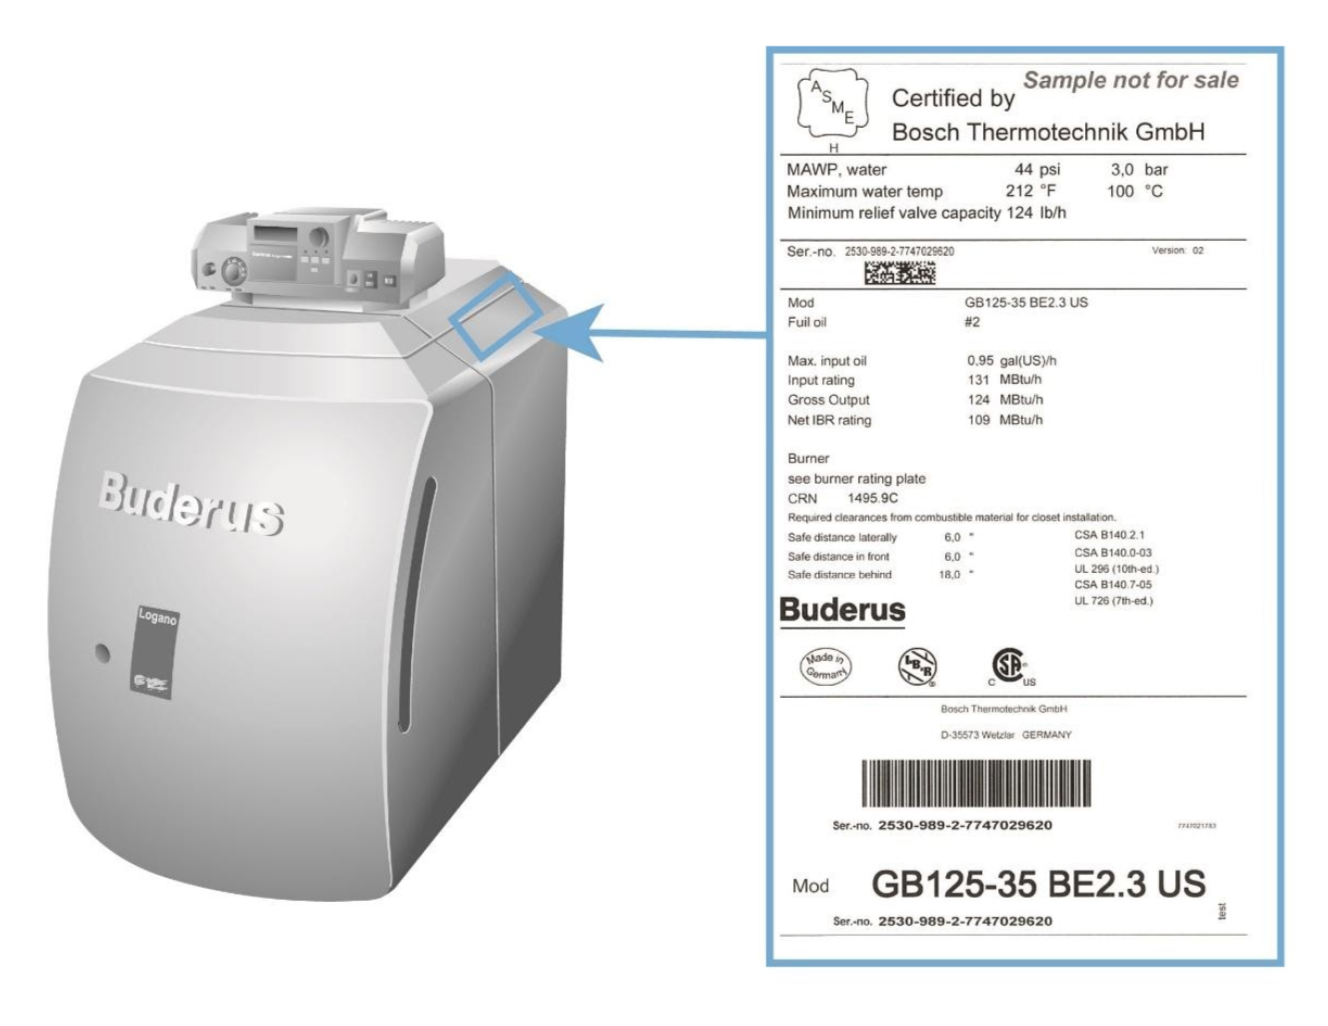 image of Buderus GB125-35 oil-condensing boilers